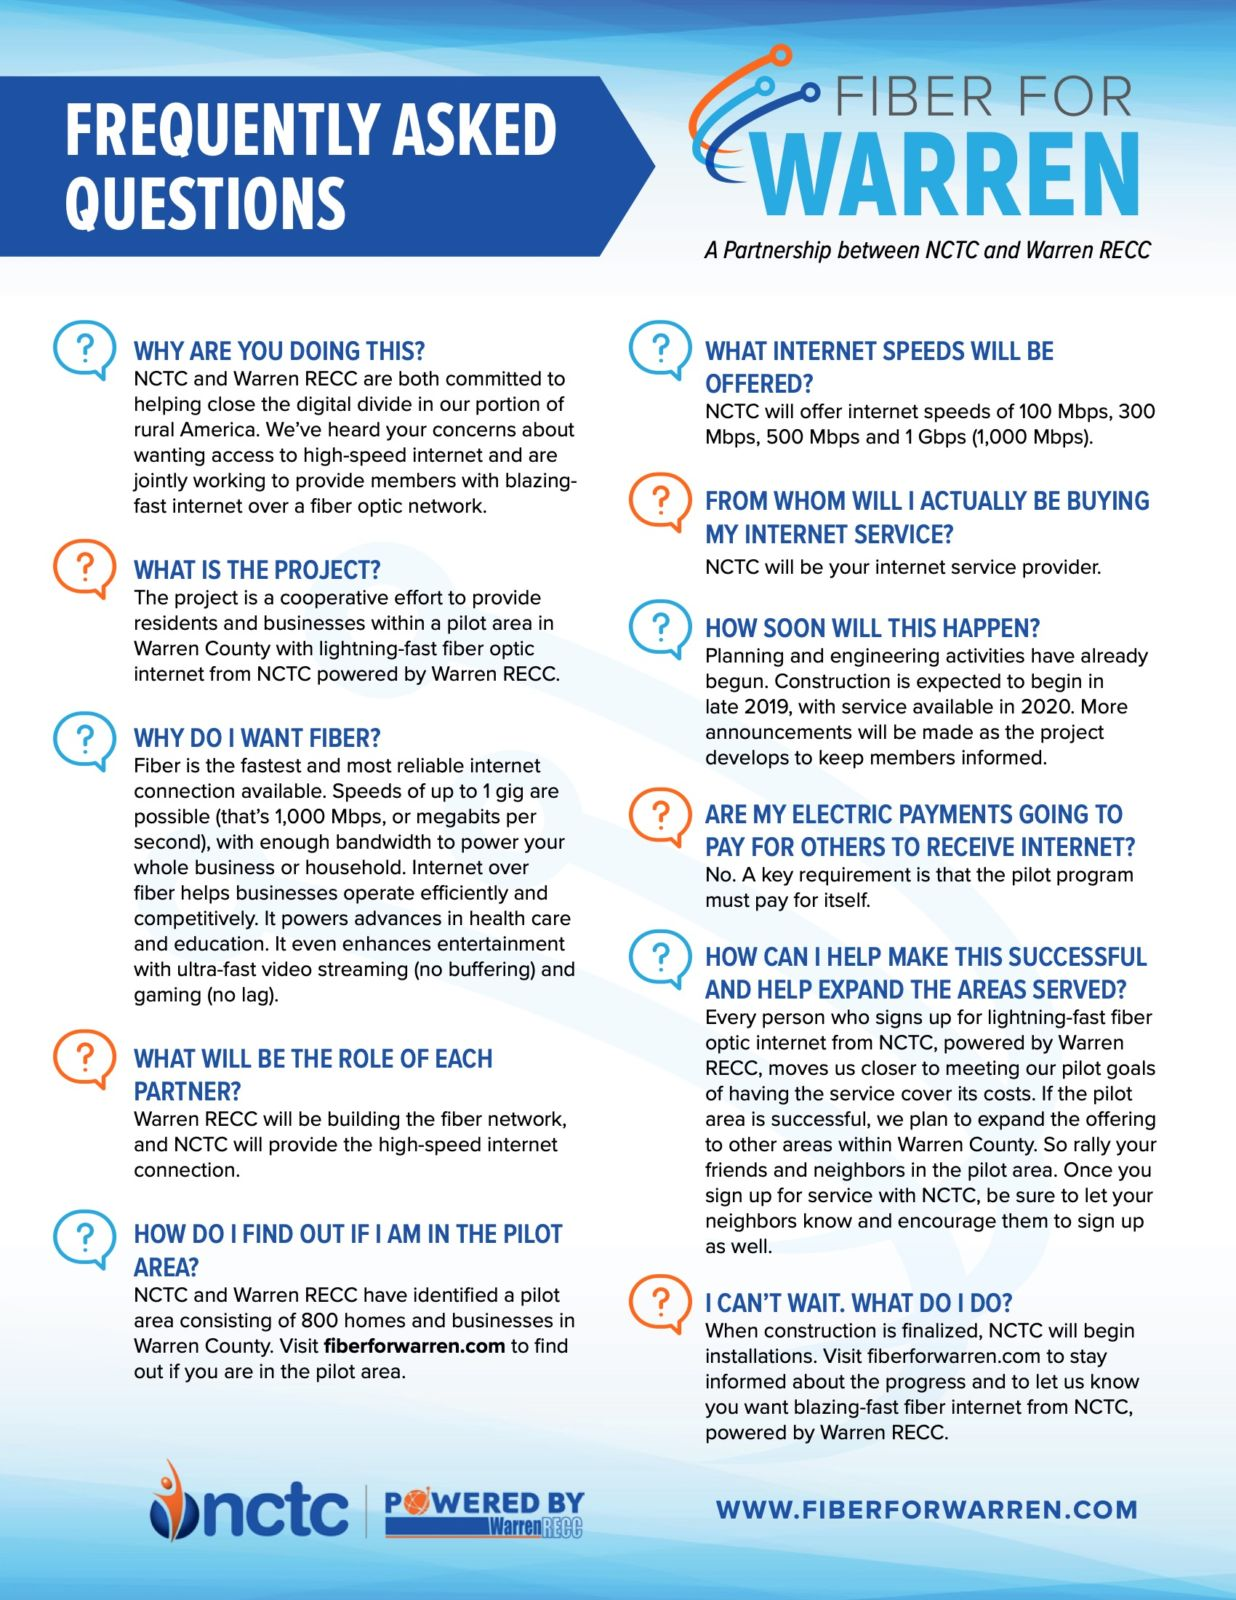 Frequently Asked Questions. Fiber for Warren. A partnership between NCTC and Warren RECC. Why are you doing this? NCTC and Warren RECC are both committed to helping close the digital divide in our portion of rural America. We've heard your concerns about wanting access to high-speed internet and are jointly working to provide members with blazing- fast internet over a fiber optic network. What is the project? The project is a cooperative effort to provide residents and businesses within a pilot area in Warren County with lightning-fast fiber optic internet from NCTC powered by Warren RECC. Why do I want fiber? Fiber is the fastest and most reliable internet connection available. Speeds of up to 1 gig are possible (that's 1,000 Mbps, or megabits per second), with enough bandwidth to power your whole business or household. Internet over fiber helps businesses operate efficiently and competitively. It powers advances in health care and education. It even enhances entertainment with ultra-fast video streaming (no buffering) and gaming (no lag). What will be the role of each partner? Warren RECC will be building the fiber network, and NCTC will provide the high-speed internet connection. How do I found out if I am in the pilot area? NCTC and Warren RECC have identified a pilot area consisting of 800 homes and businesses in Warren County. Visit fiberforwarren.com to find out if you are in the pilot area. What internet speeds will be offered? NCTC will offer internet speeds of 100 Mbps, 300 Mbps, 500 Mbps and 1 Gbps (1,000 Mbps).From whom will i actually be buying my internet service? NCTC will be your internet service provider. How soon will this happen? Planning and engineering activities have already begun. Construction is expected to begin in late 2019, with service available in 2020. More announcements will be made as the project develops to keep members informed. Are my electric payments going to pay for others to receive internet? No. A key requirement is that the pilot program must pay for itself. How can i help make this successful and help expand the areas served? Every person who signs up for lightning-fast fiber optic internet from NCTC, powered by Warren RECC, moves us closer to meeting our pilot goals of having the service cover its costs. If the pilot area is successful, we plan to expand the offering to other areas within Warren County. So rally your friends and neighbors in the pilot area. Once you sign up for service with NCTC, be sure to let your neighbors know and encourage them to sign up as well. I can't wait. What do I do? When construction is finalized, NCTC will begin installations. Visit fiberforwarren.com to stay informed about the progress and to let us know you want blazing-fast fiber internet from NCTC, powered by Warren RECC.